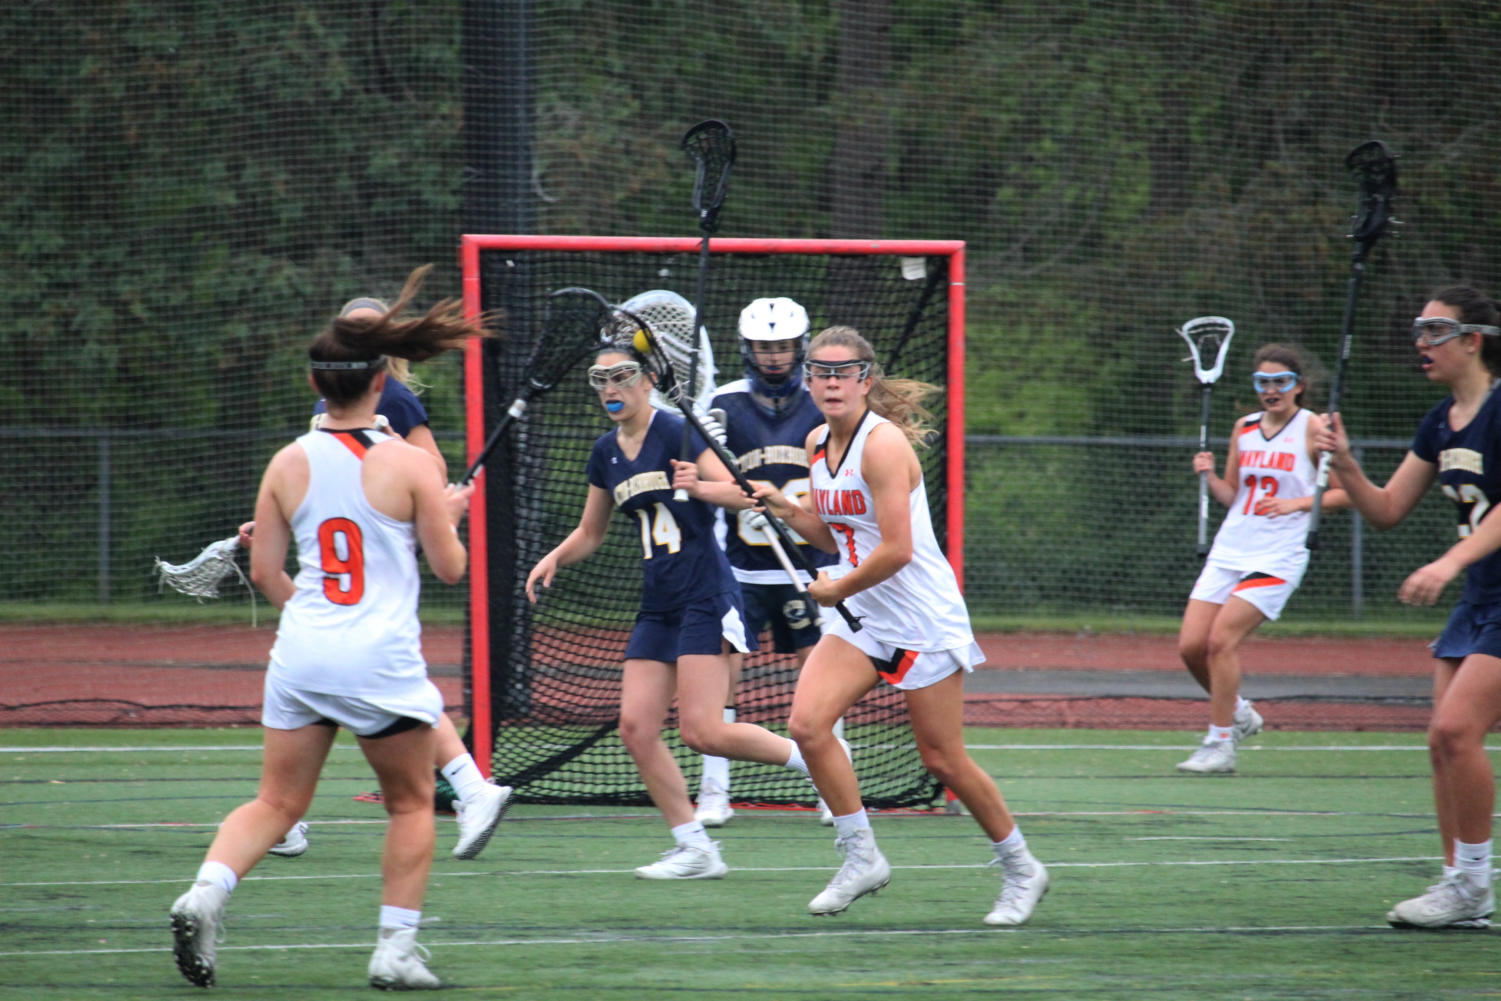 Junior+Caroline+Lampert+scans+the+field+for+an+open+teammate+as+Wayland+gets+closer+to+scoring+another+point.